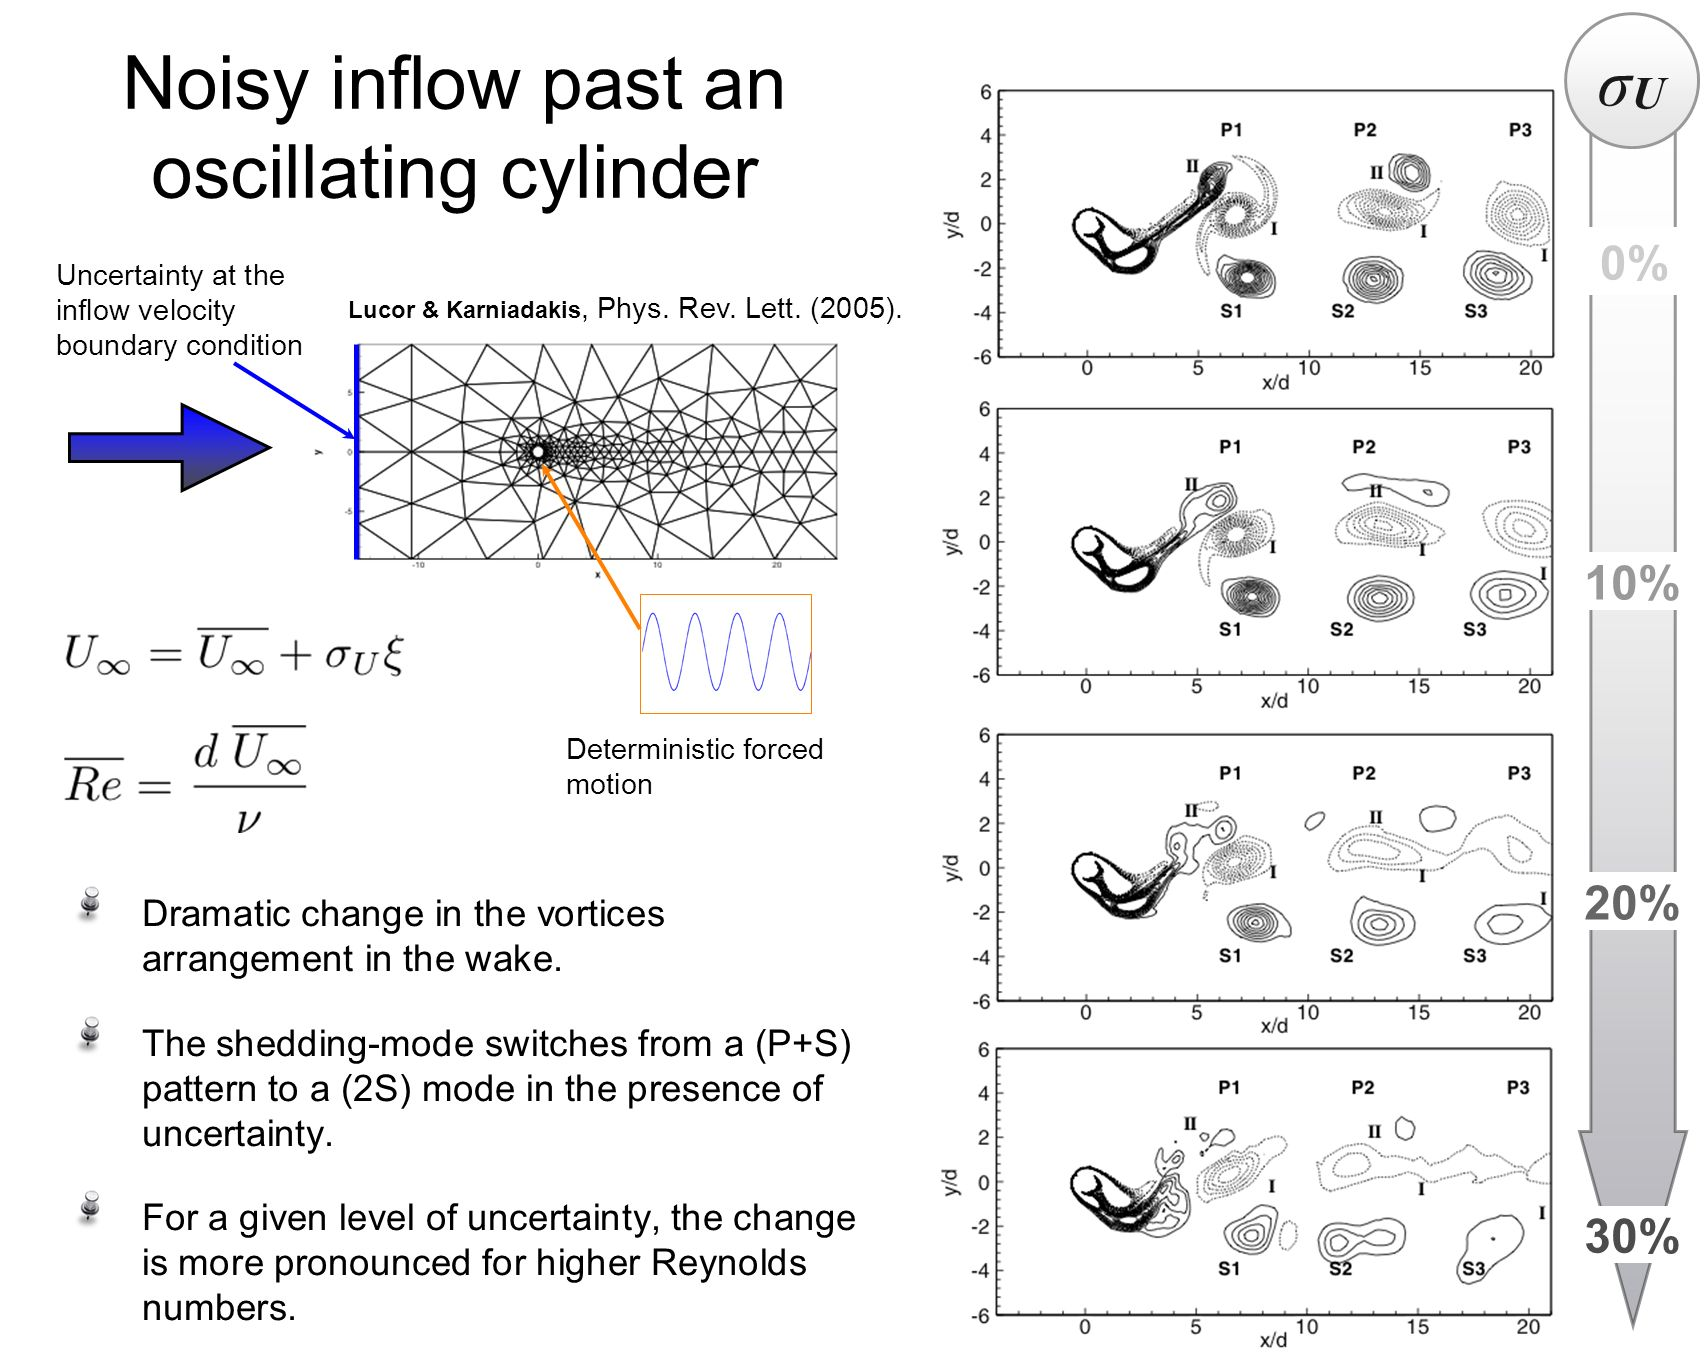 Noisy inflow past an oscillating cylinder